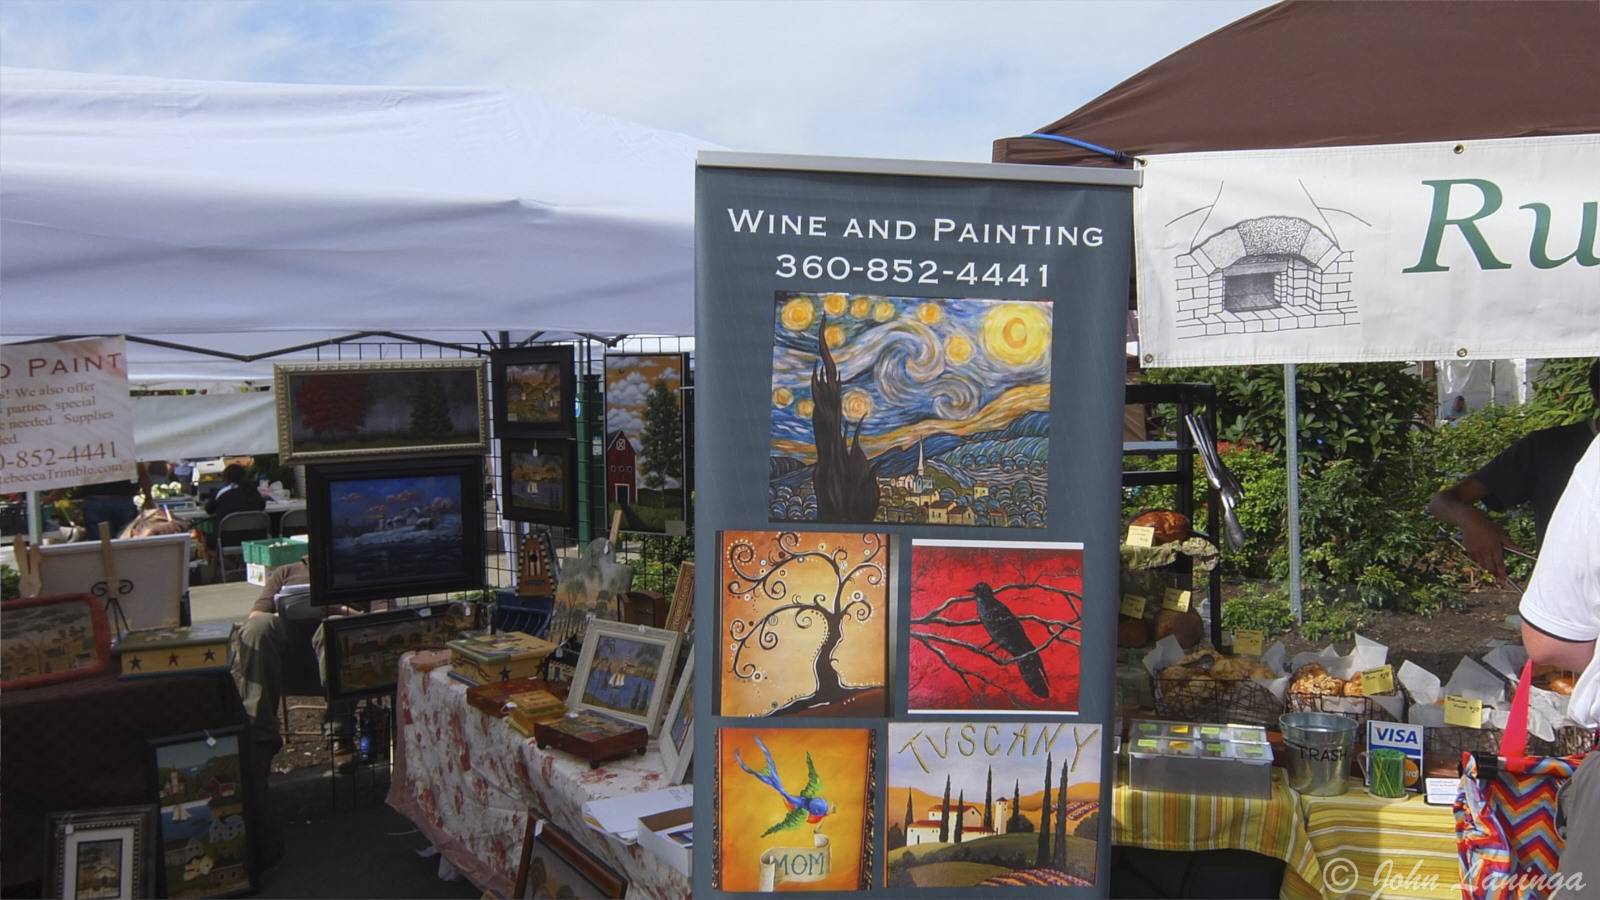 Combining wine and painting... what a novel idea!